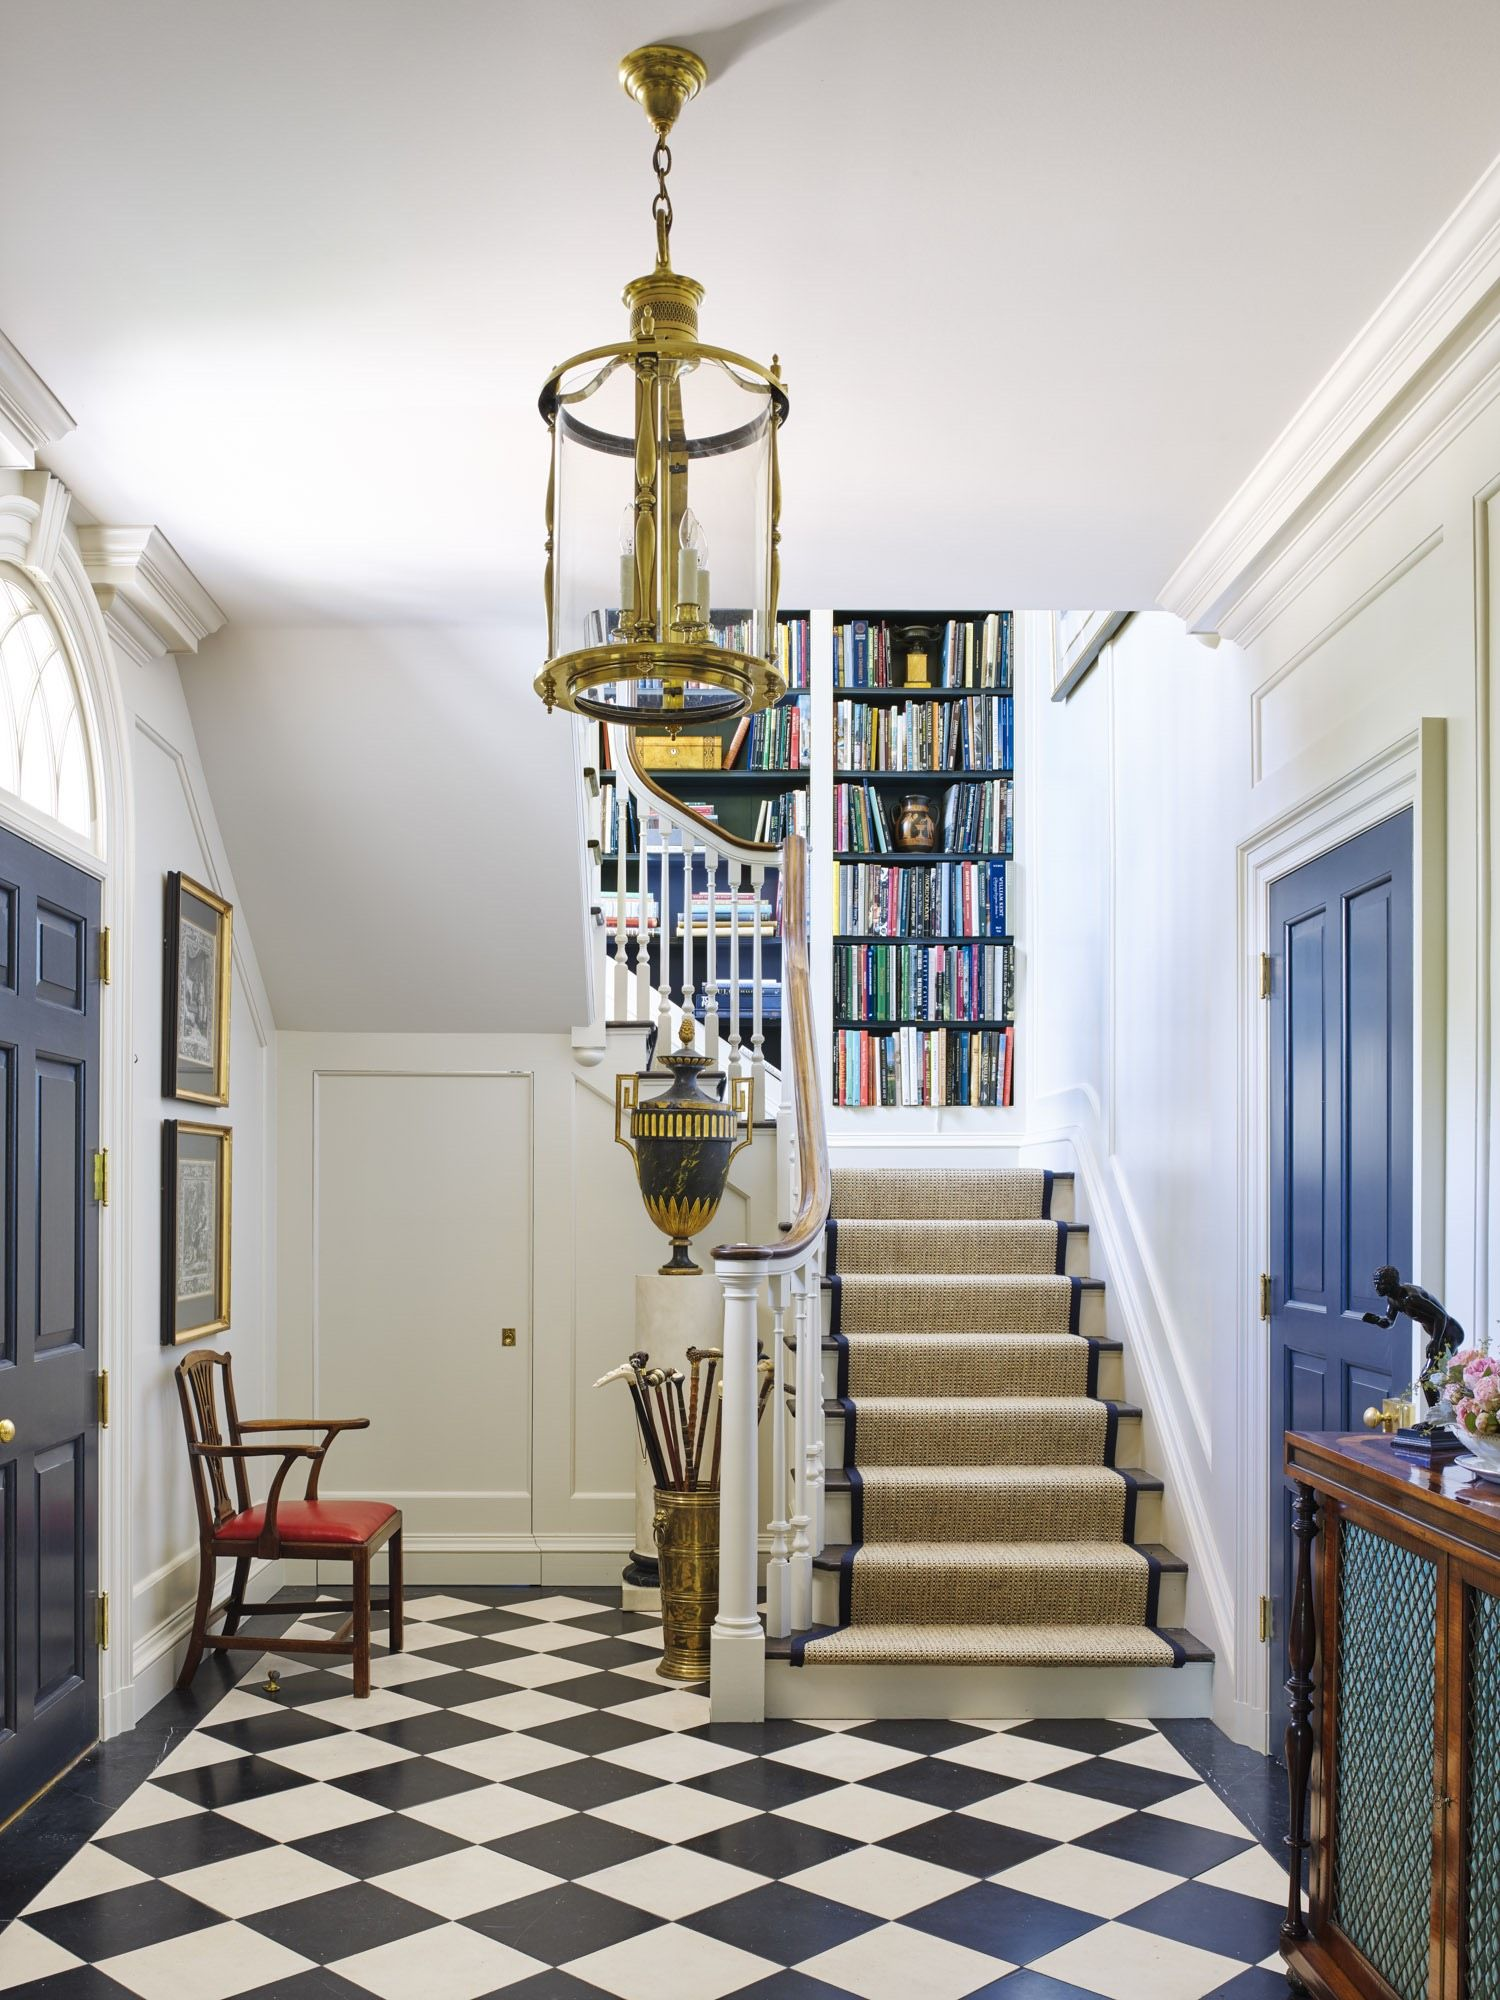 Small Entry Hall With Bookshelves Up The Stairs.